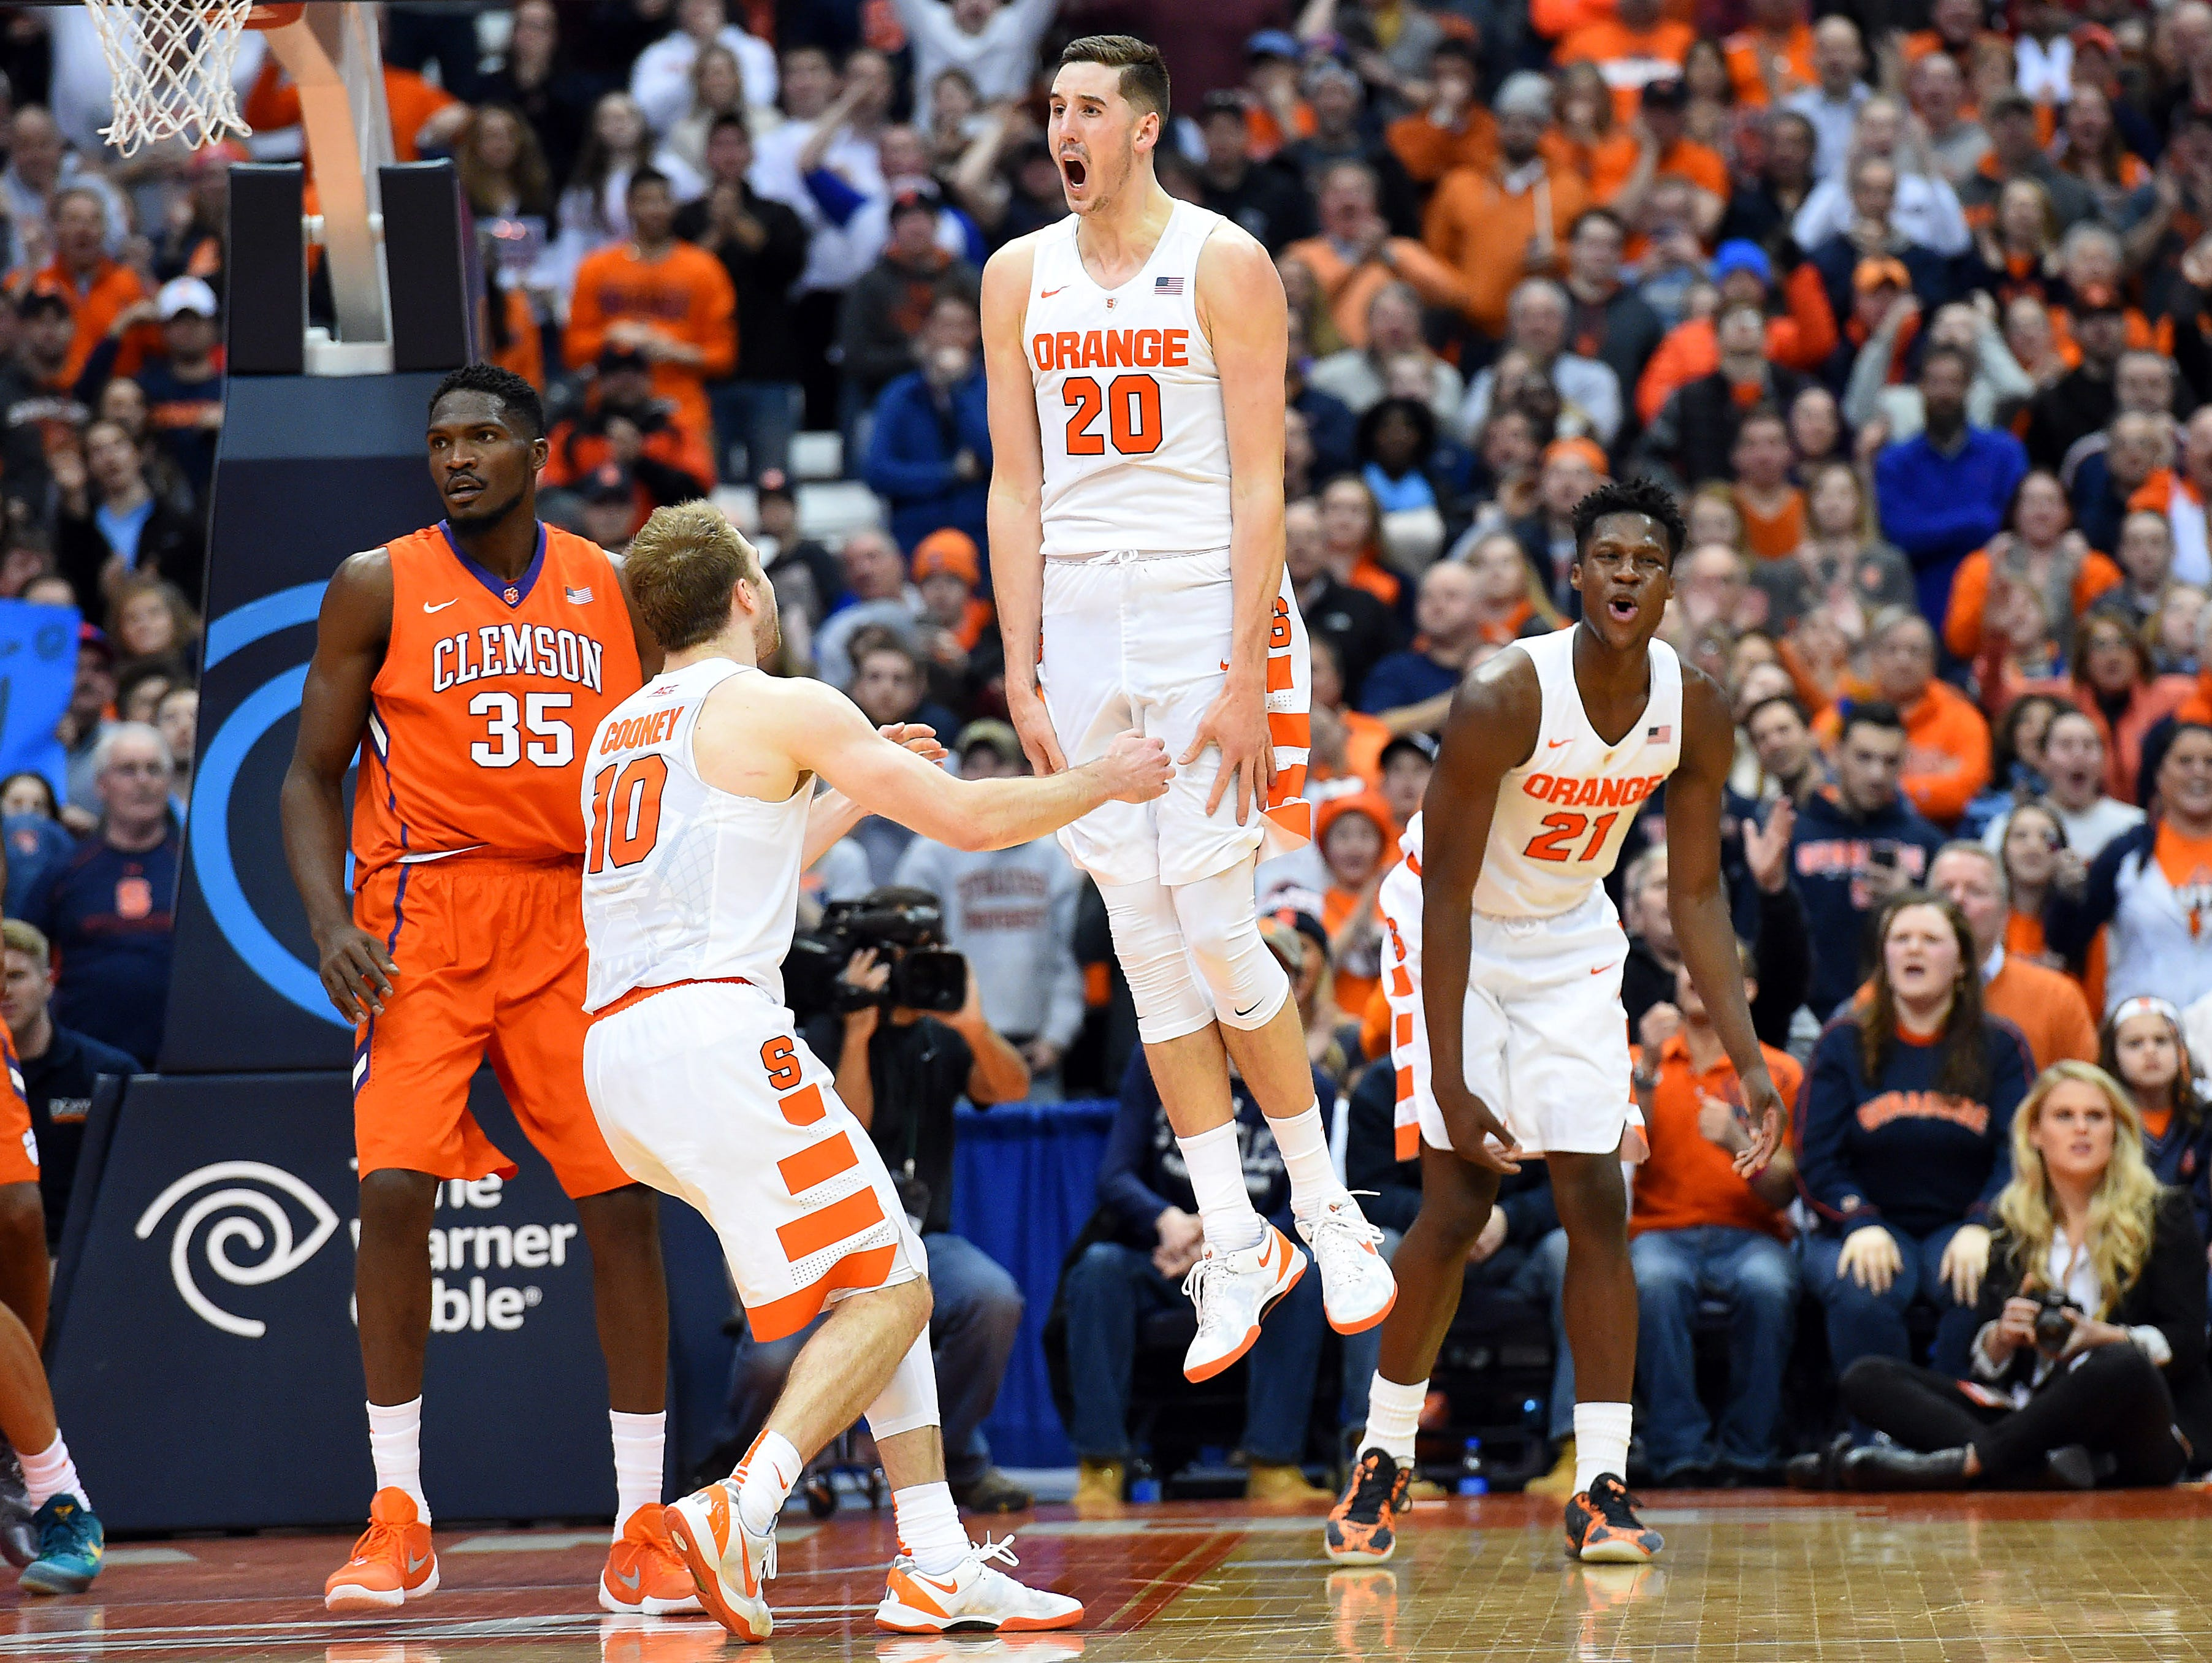 Syracuse's Tyler Lydon, center, leaps in the air in reaction to a call against Clemson during their teams' game on Jan. 5 in Syracuse.